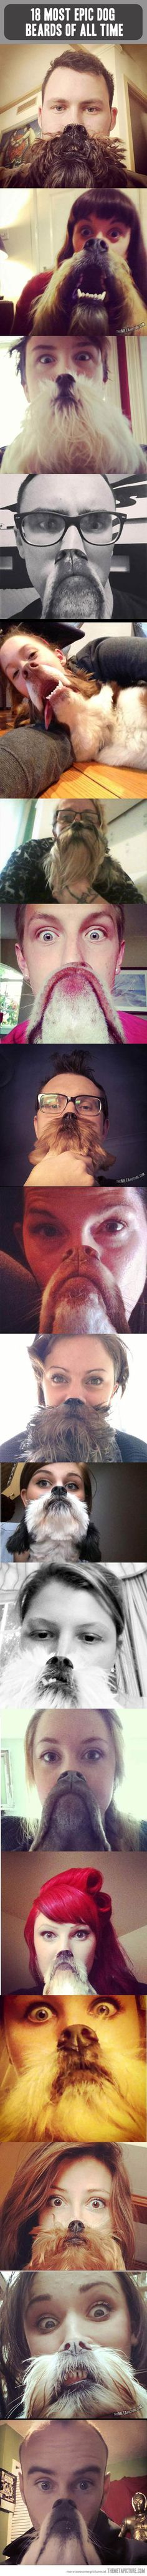 Dog beards.